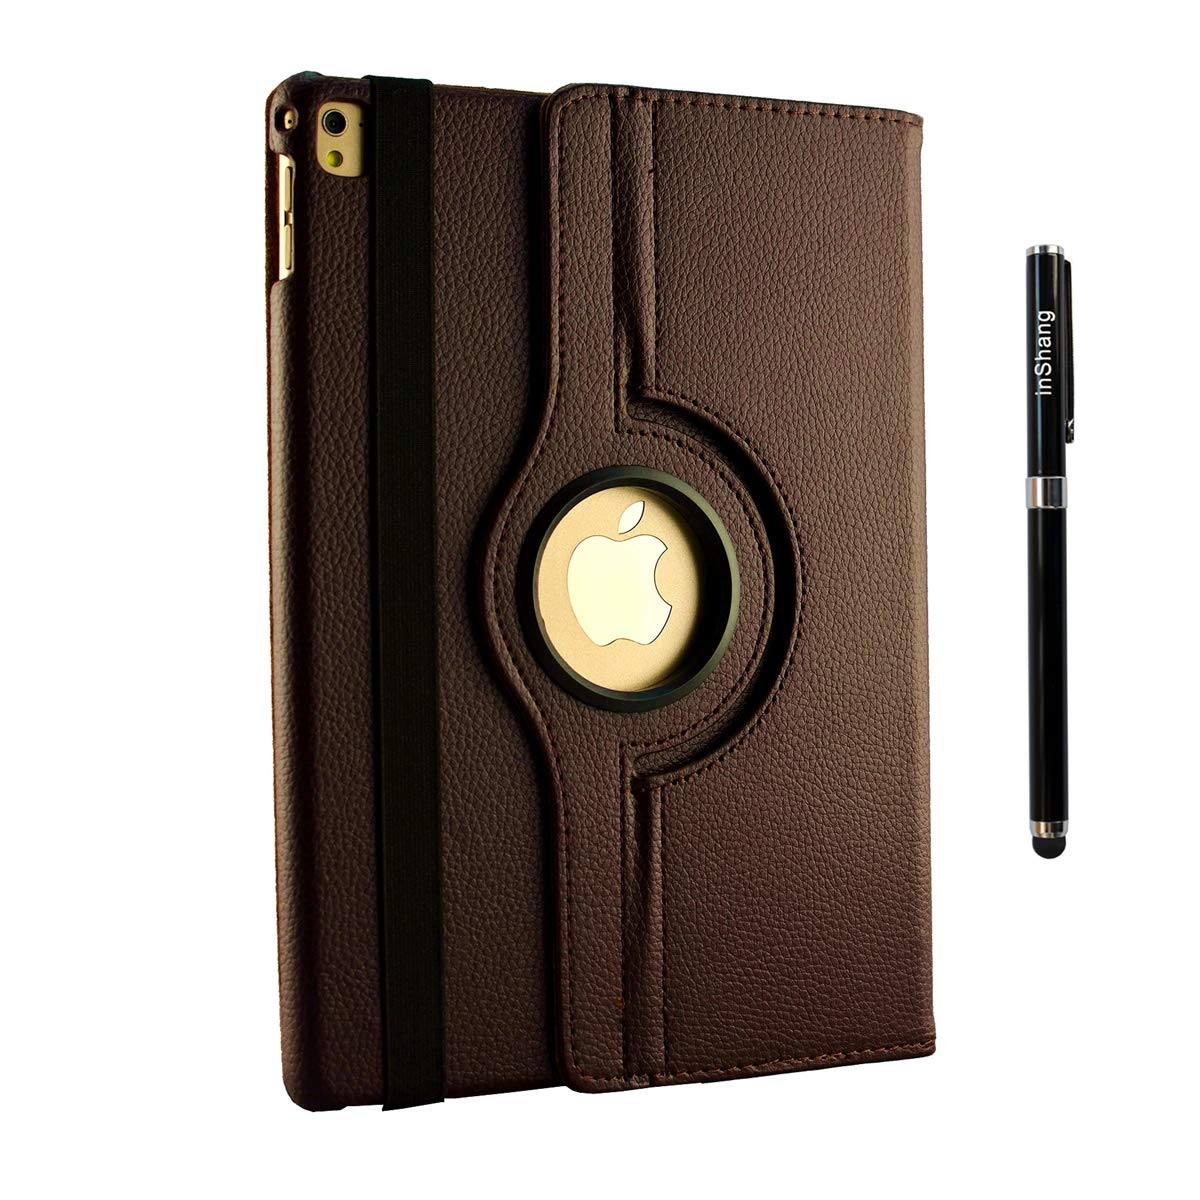 free stylus inShang 10.5 inch iPad air 3 iPad 2019 Case Smart Cover Compatible iPad Pro 10.5 inch 360 Rotating Case ,iPad Stand with Auto Sleep//Wake 2017